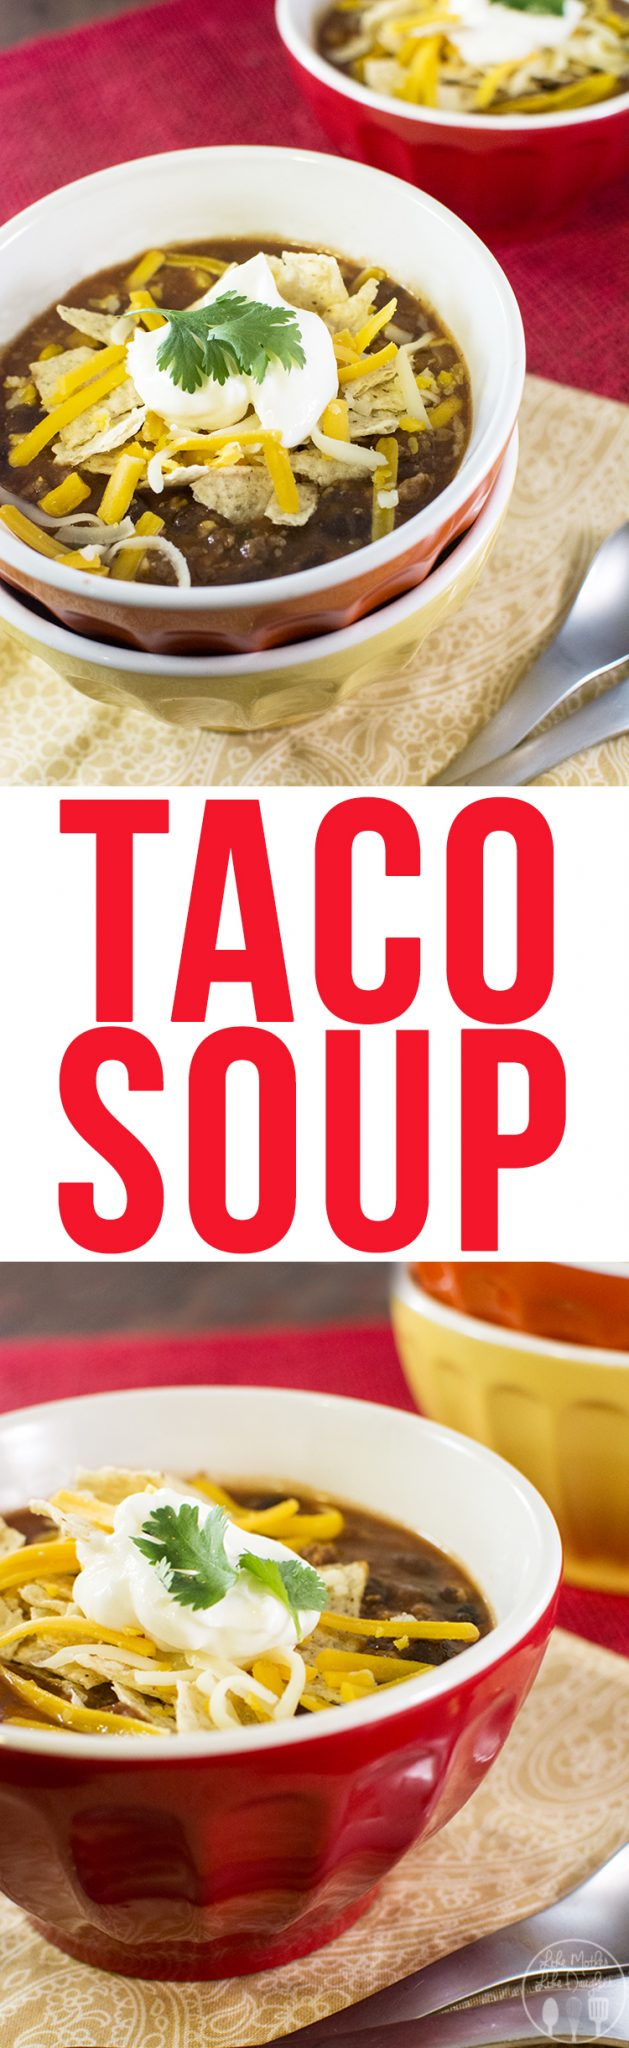 Taco Soup - this amazing taco soup is so easy to make! You just toss a bunch of ingredients into your crockpot and you're ready to go. This flavorful soup is the perfect fall comfort food!